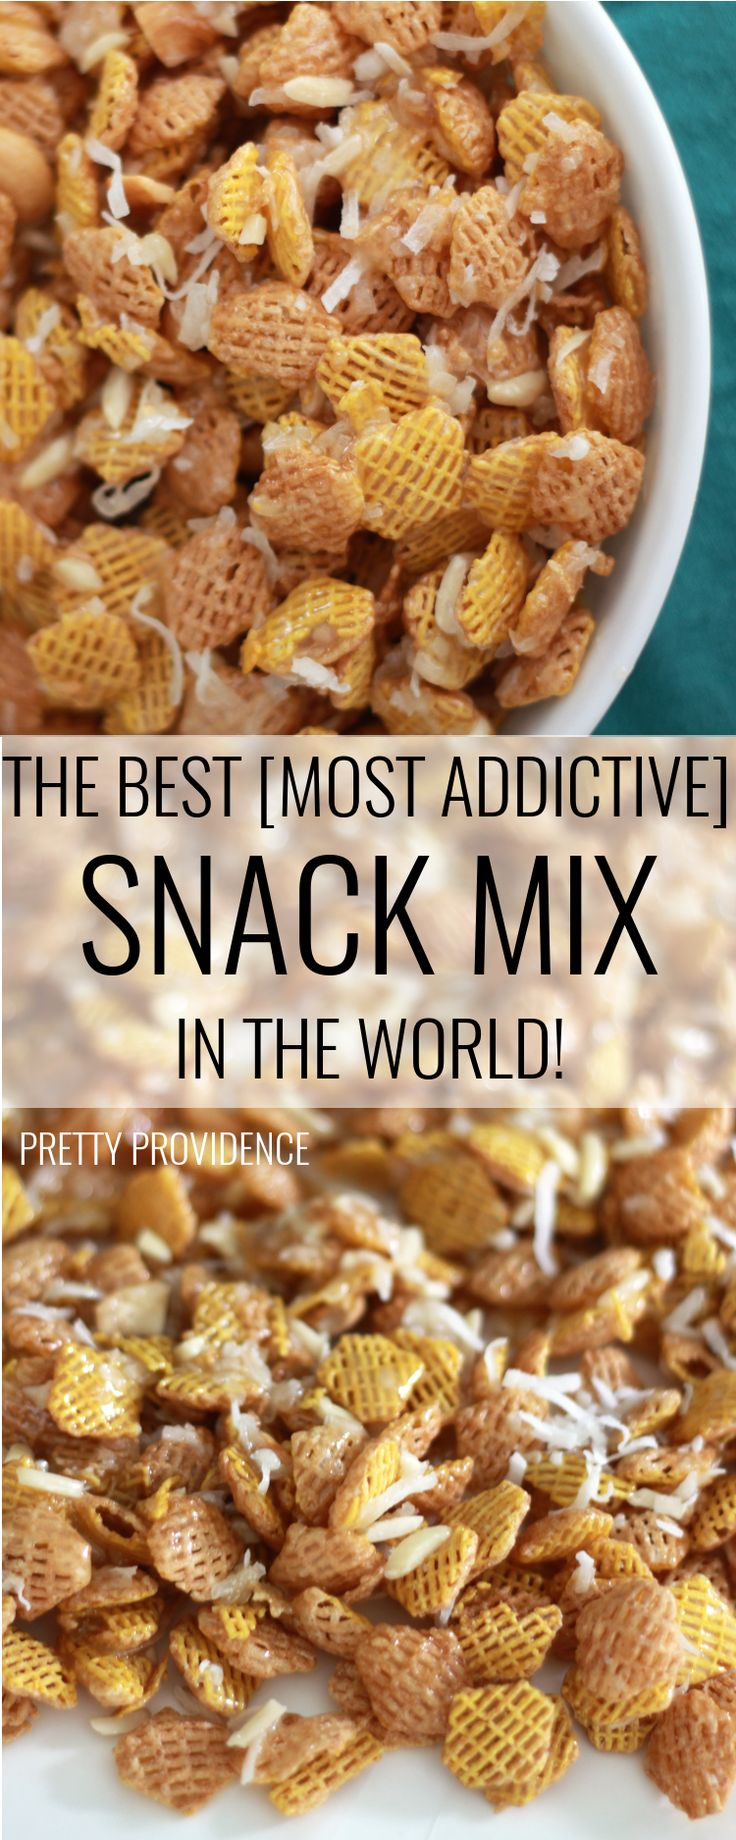 GORP - The Best Snack Mix in the World - Pretty Providence More